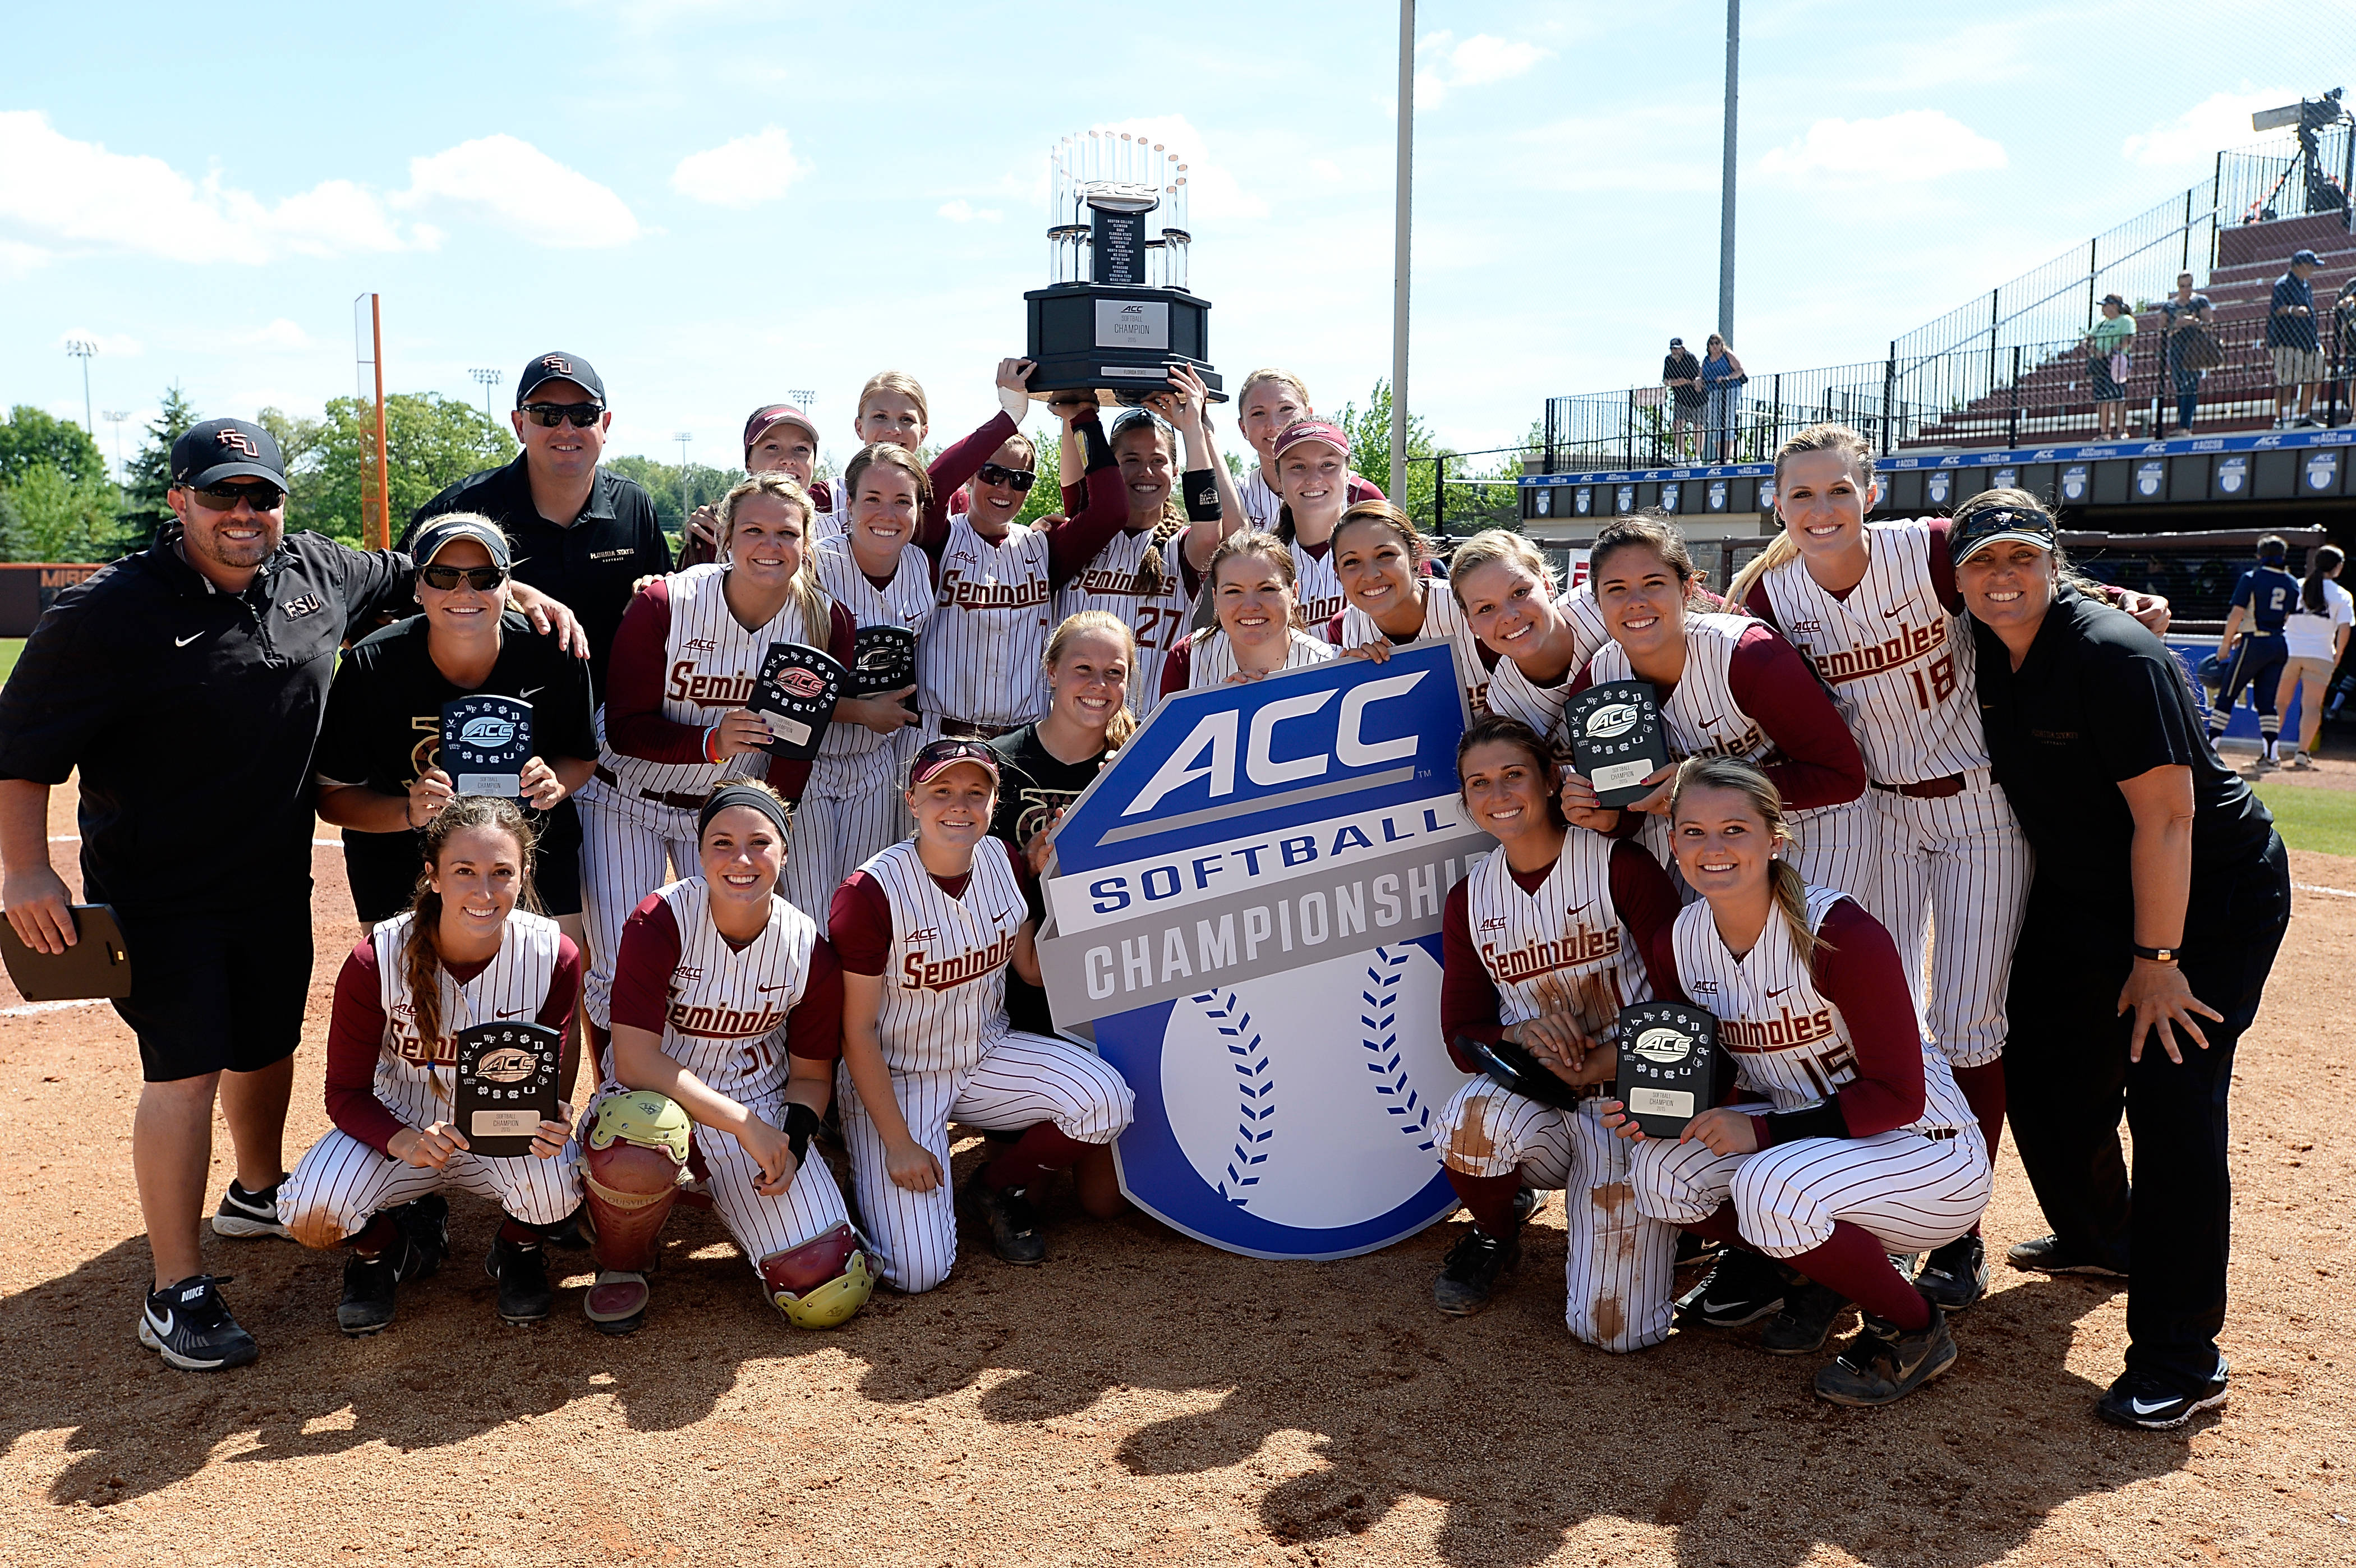 Florida State at the 2015 ACC Championship